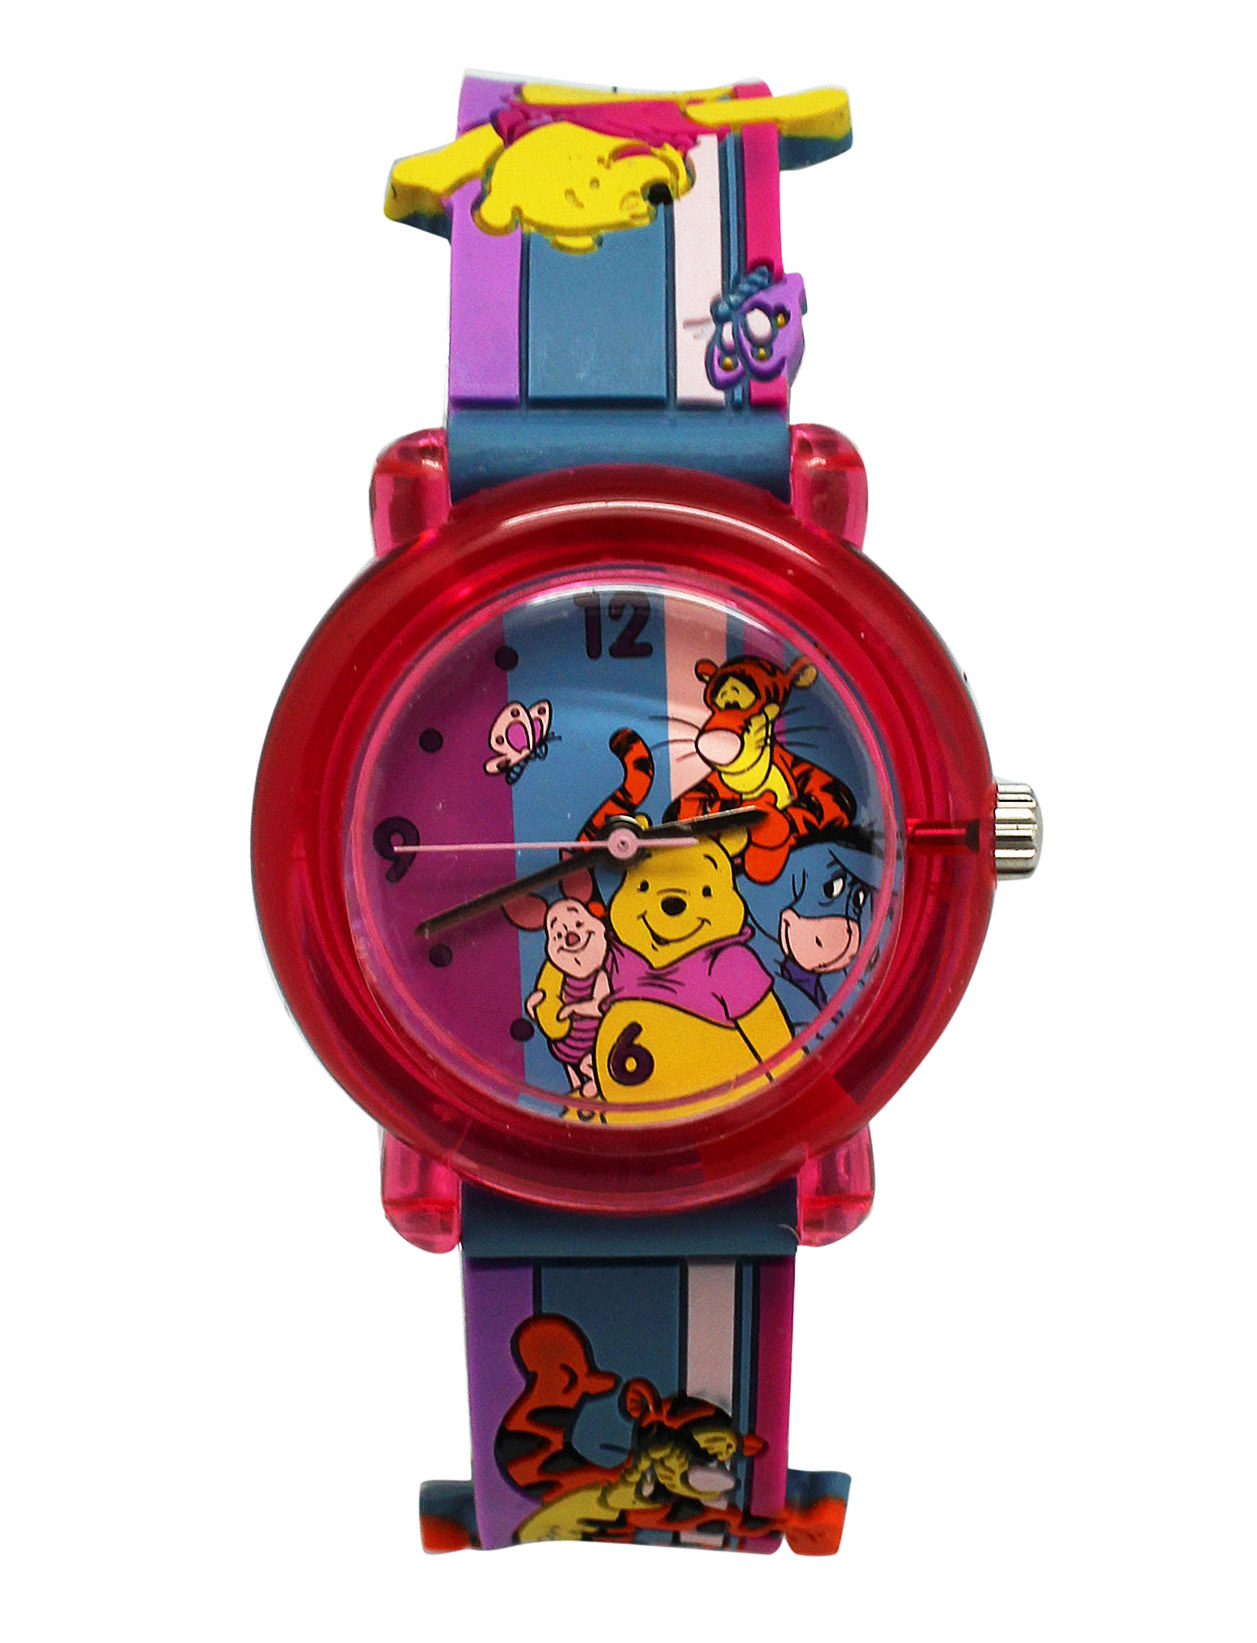 Winnie The Pooh Pink Analog Watch With Metal Box (25mm)